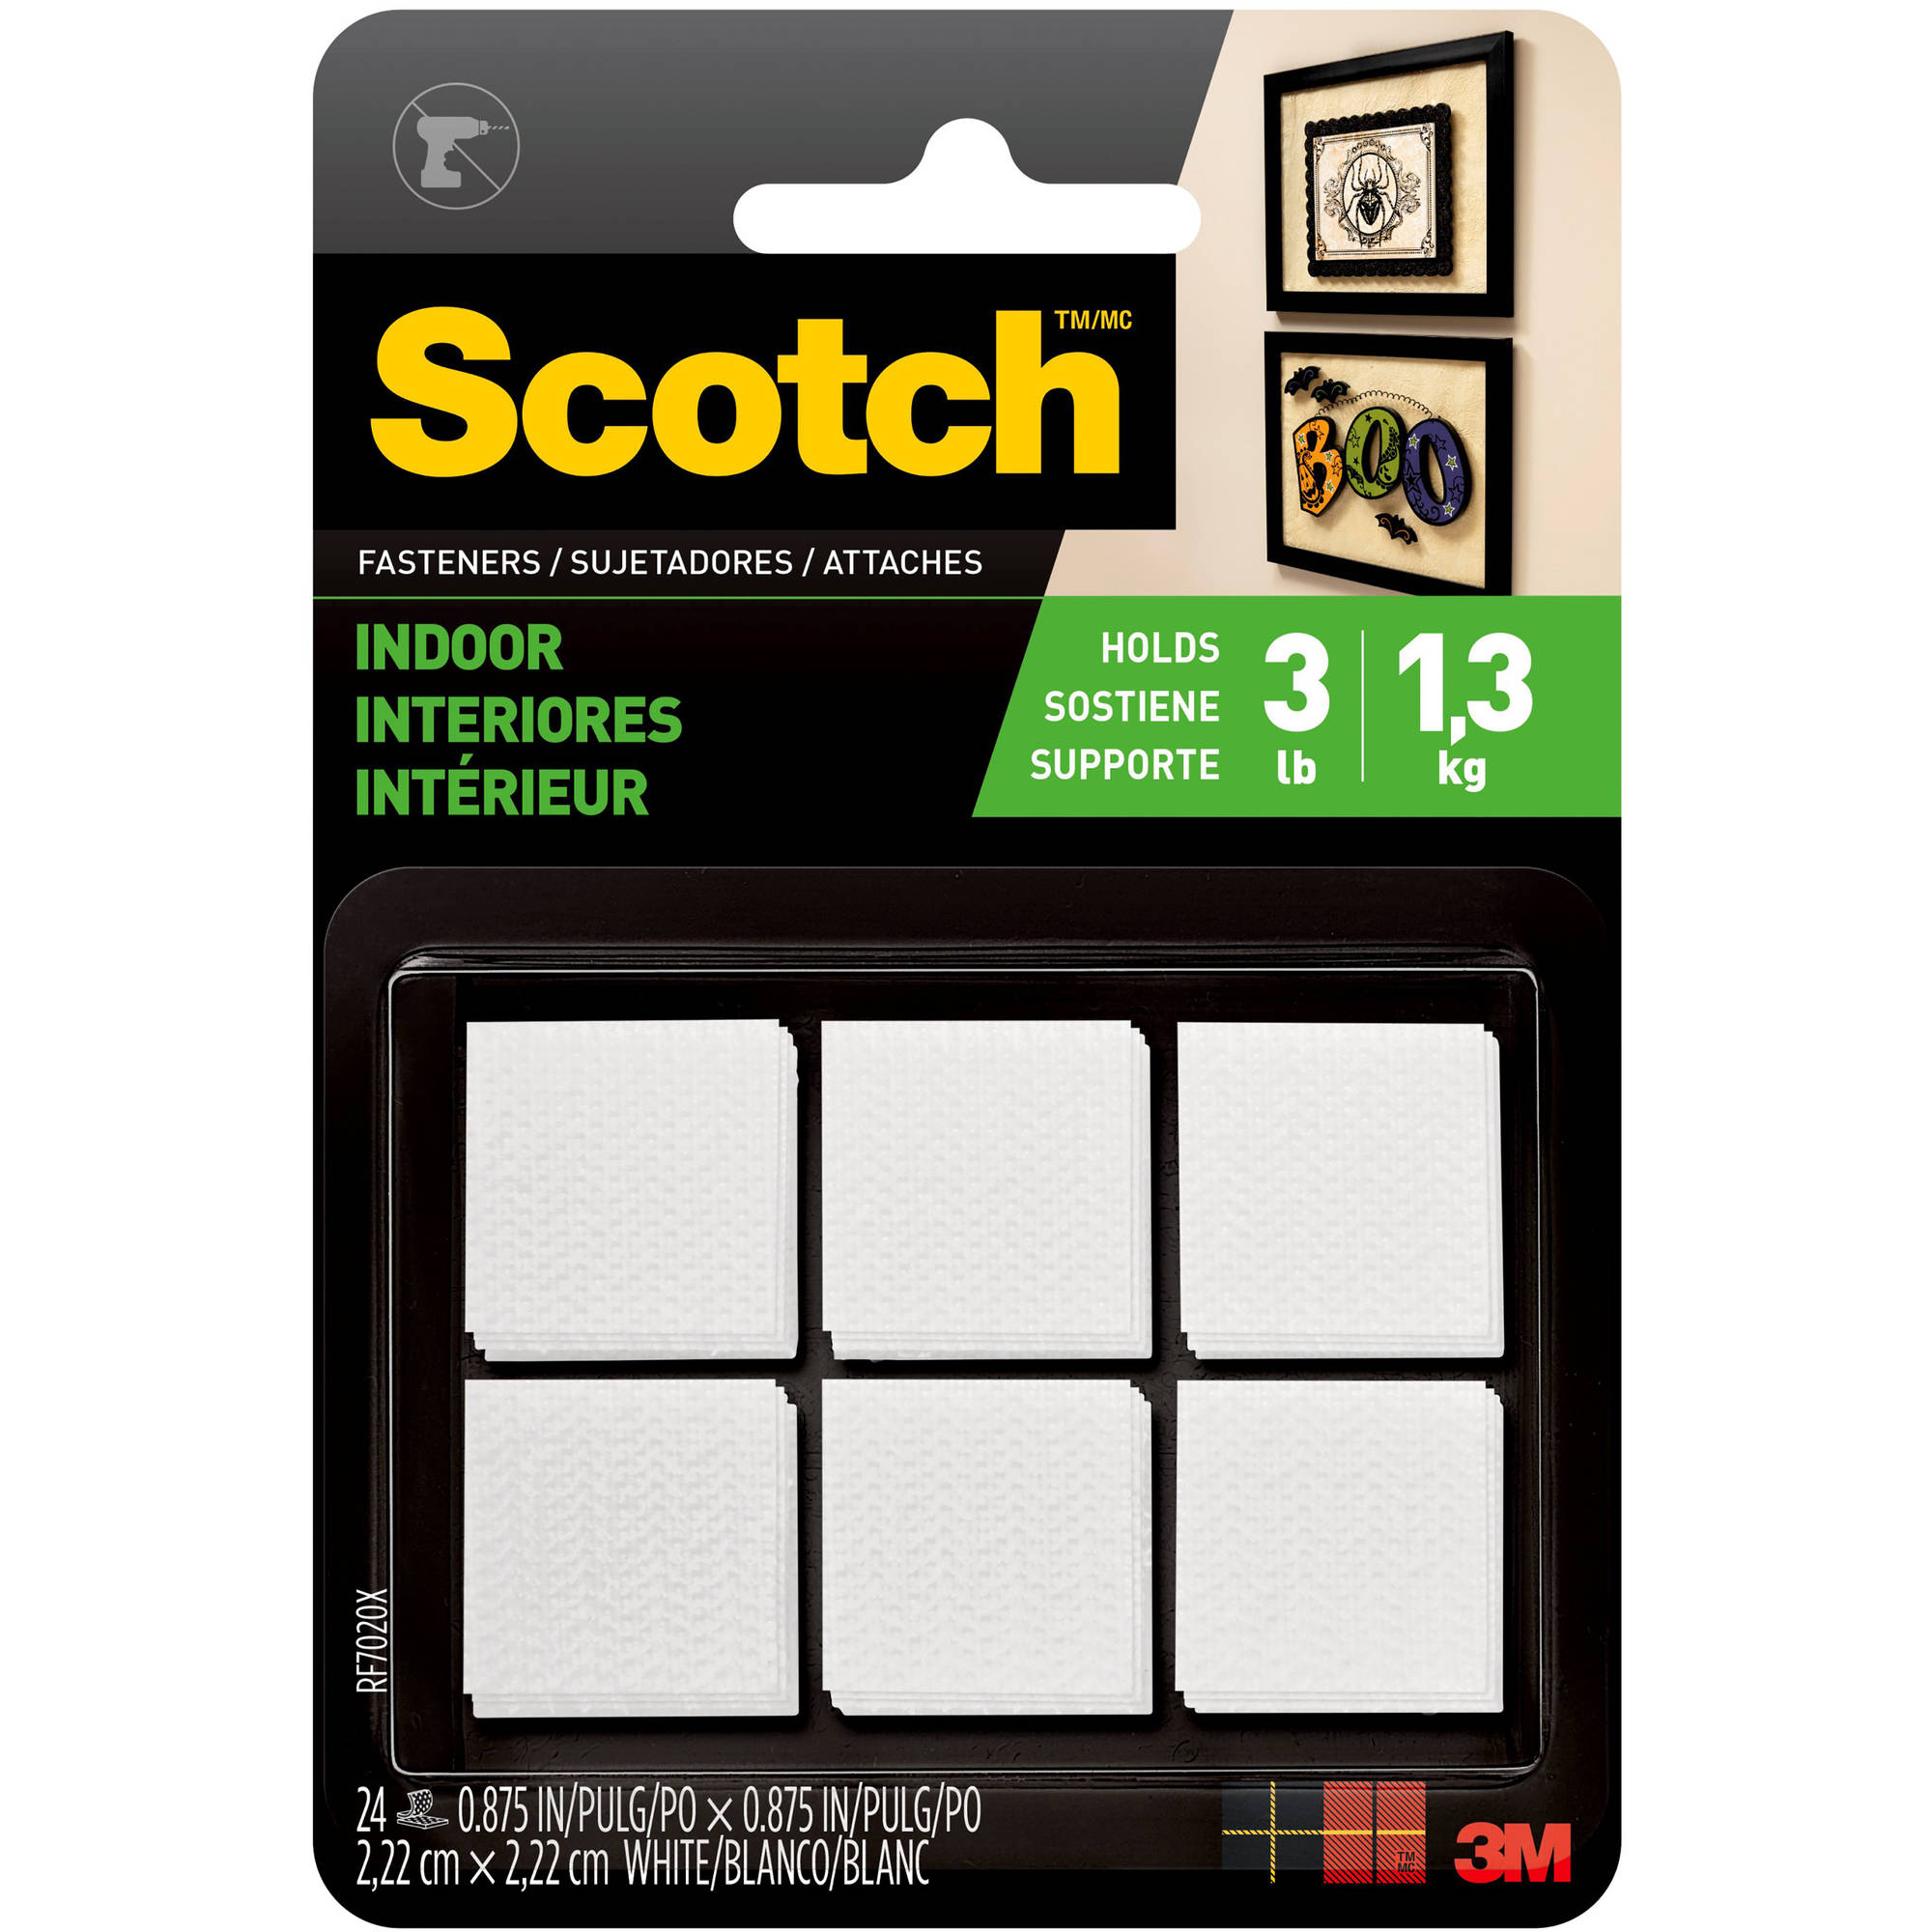 Scotch Indoor Fasteners , 7/8 in. x 7/8 in., White, 24 Sets/Pack